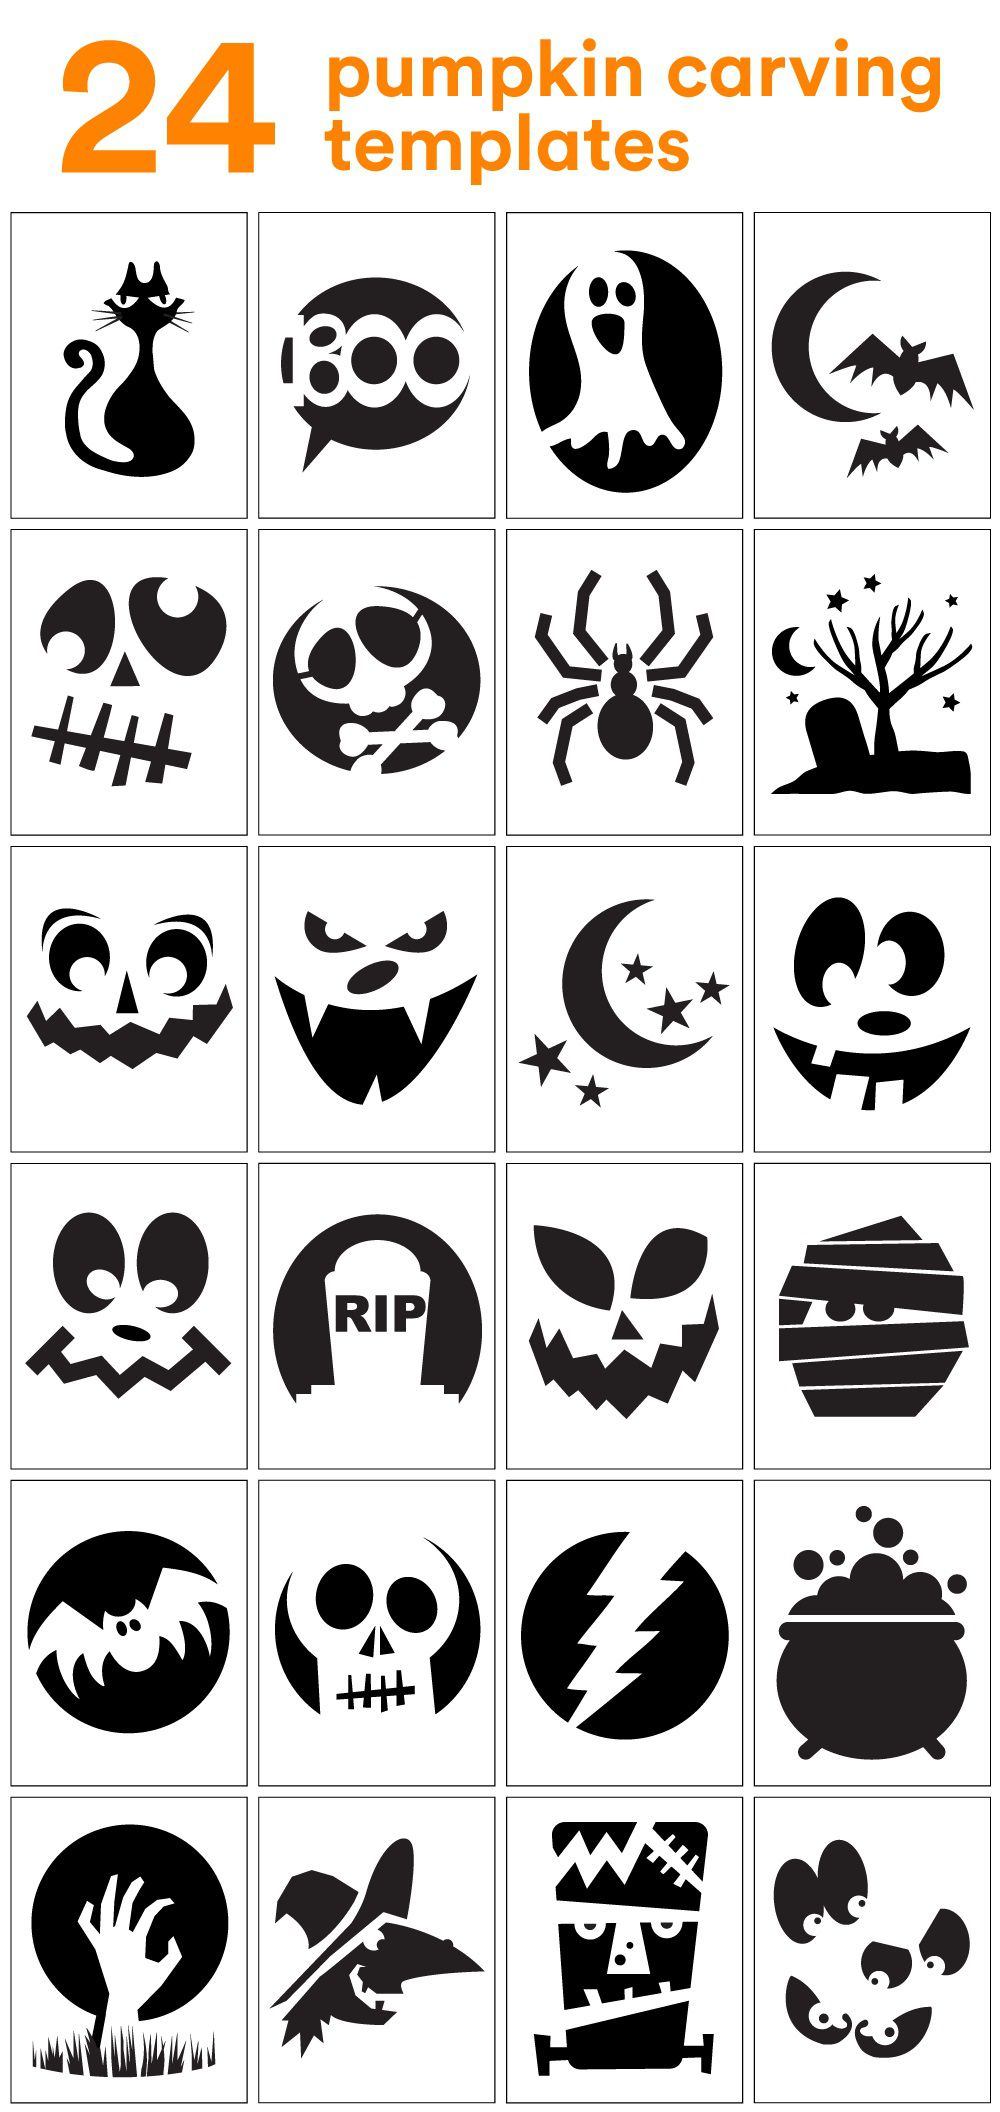 006 Top Free Pumpkin Template Printable High Resolution  Easy Carving Scary StencilFull